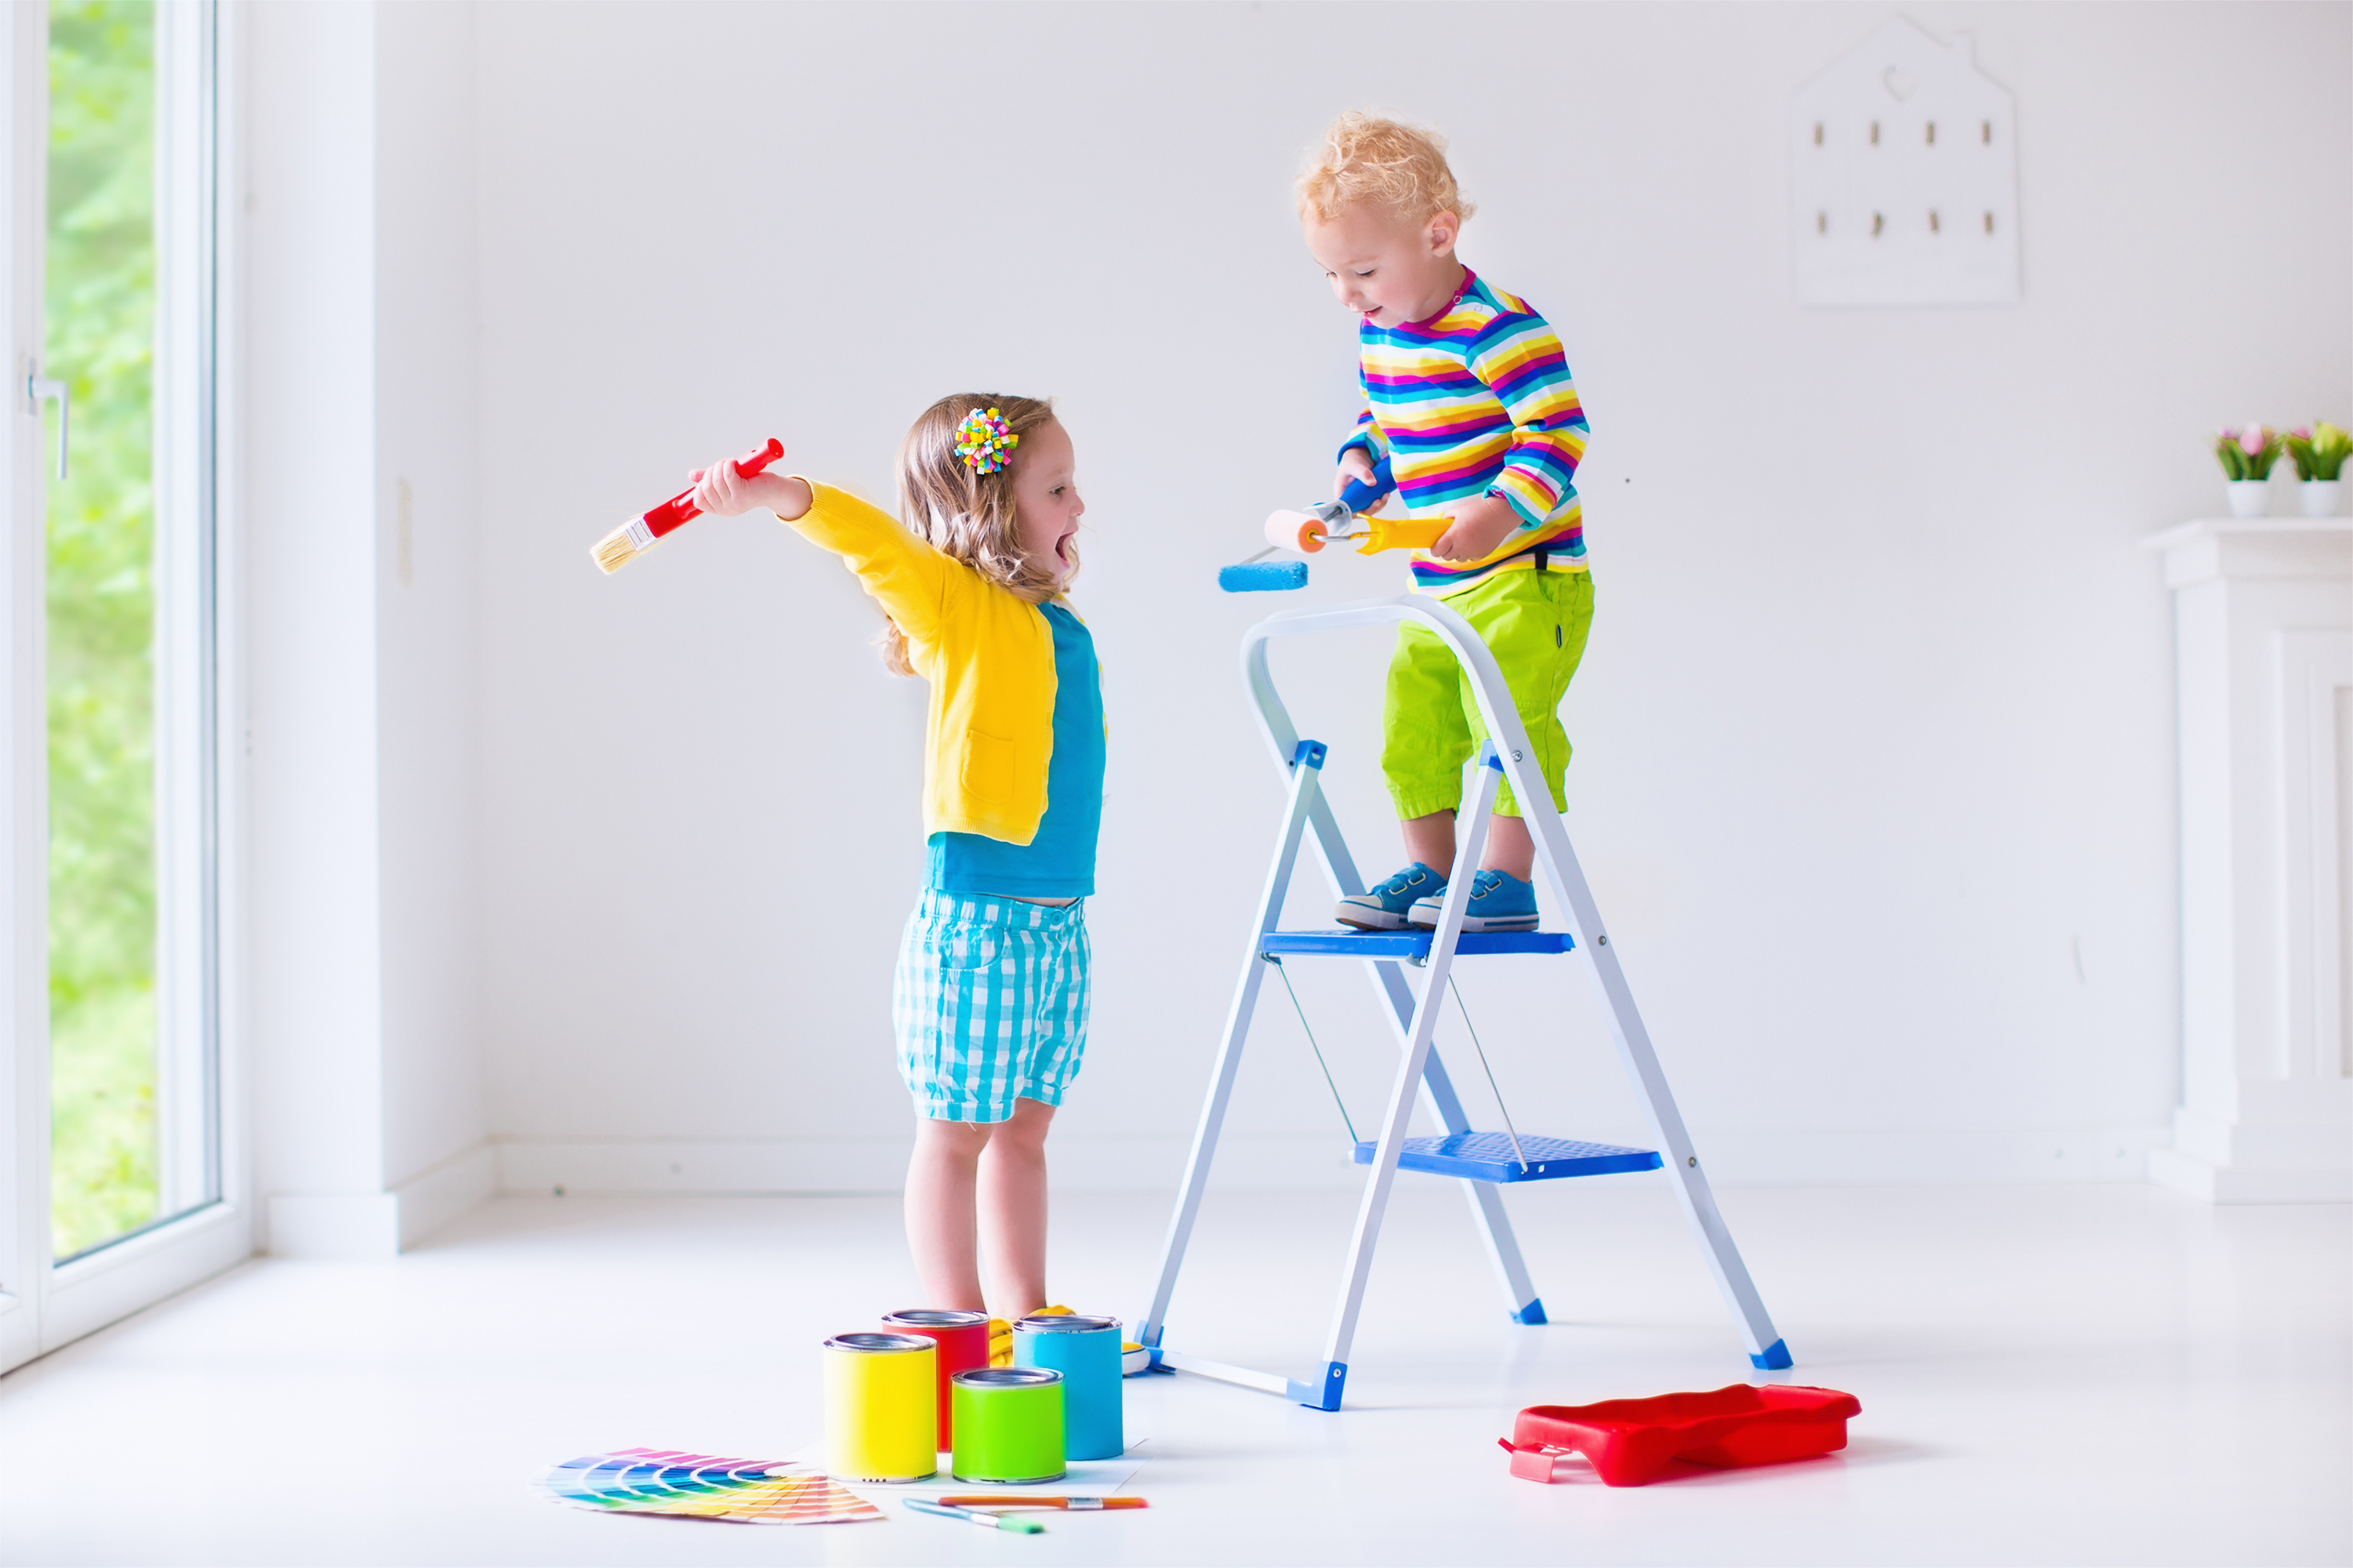 Painting is part of the work for getting a home in great shape and helping you to sell your home fast.